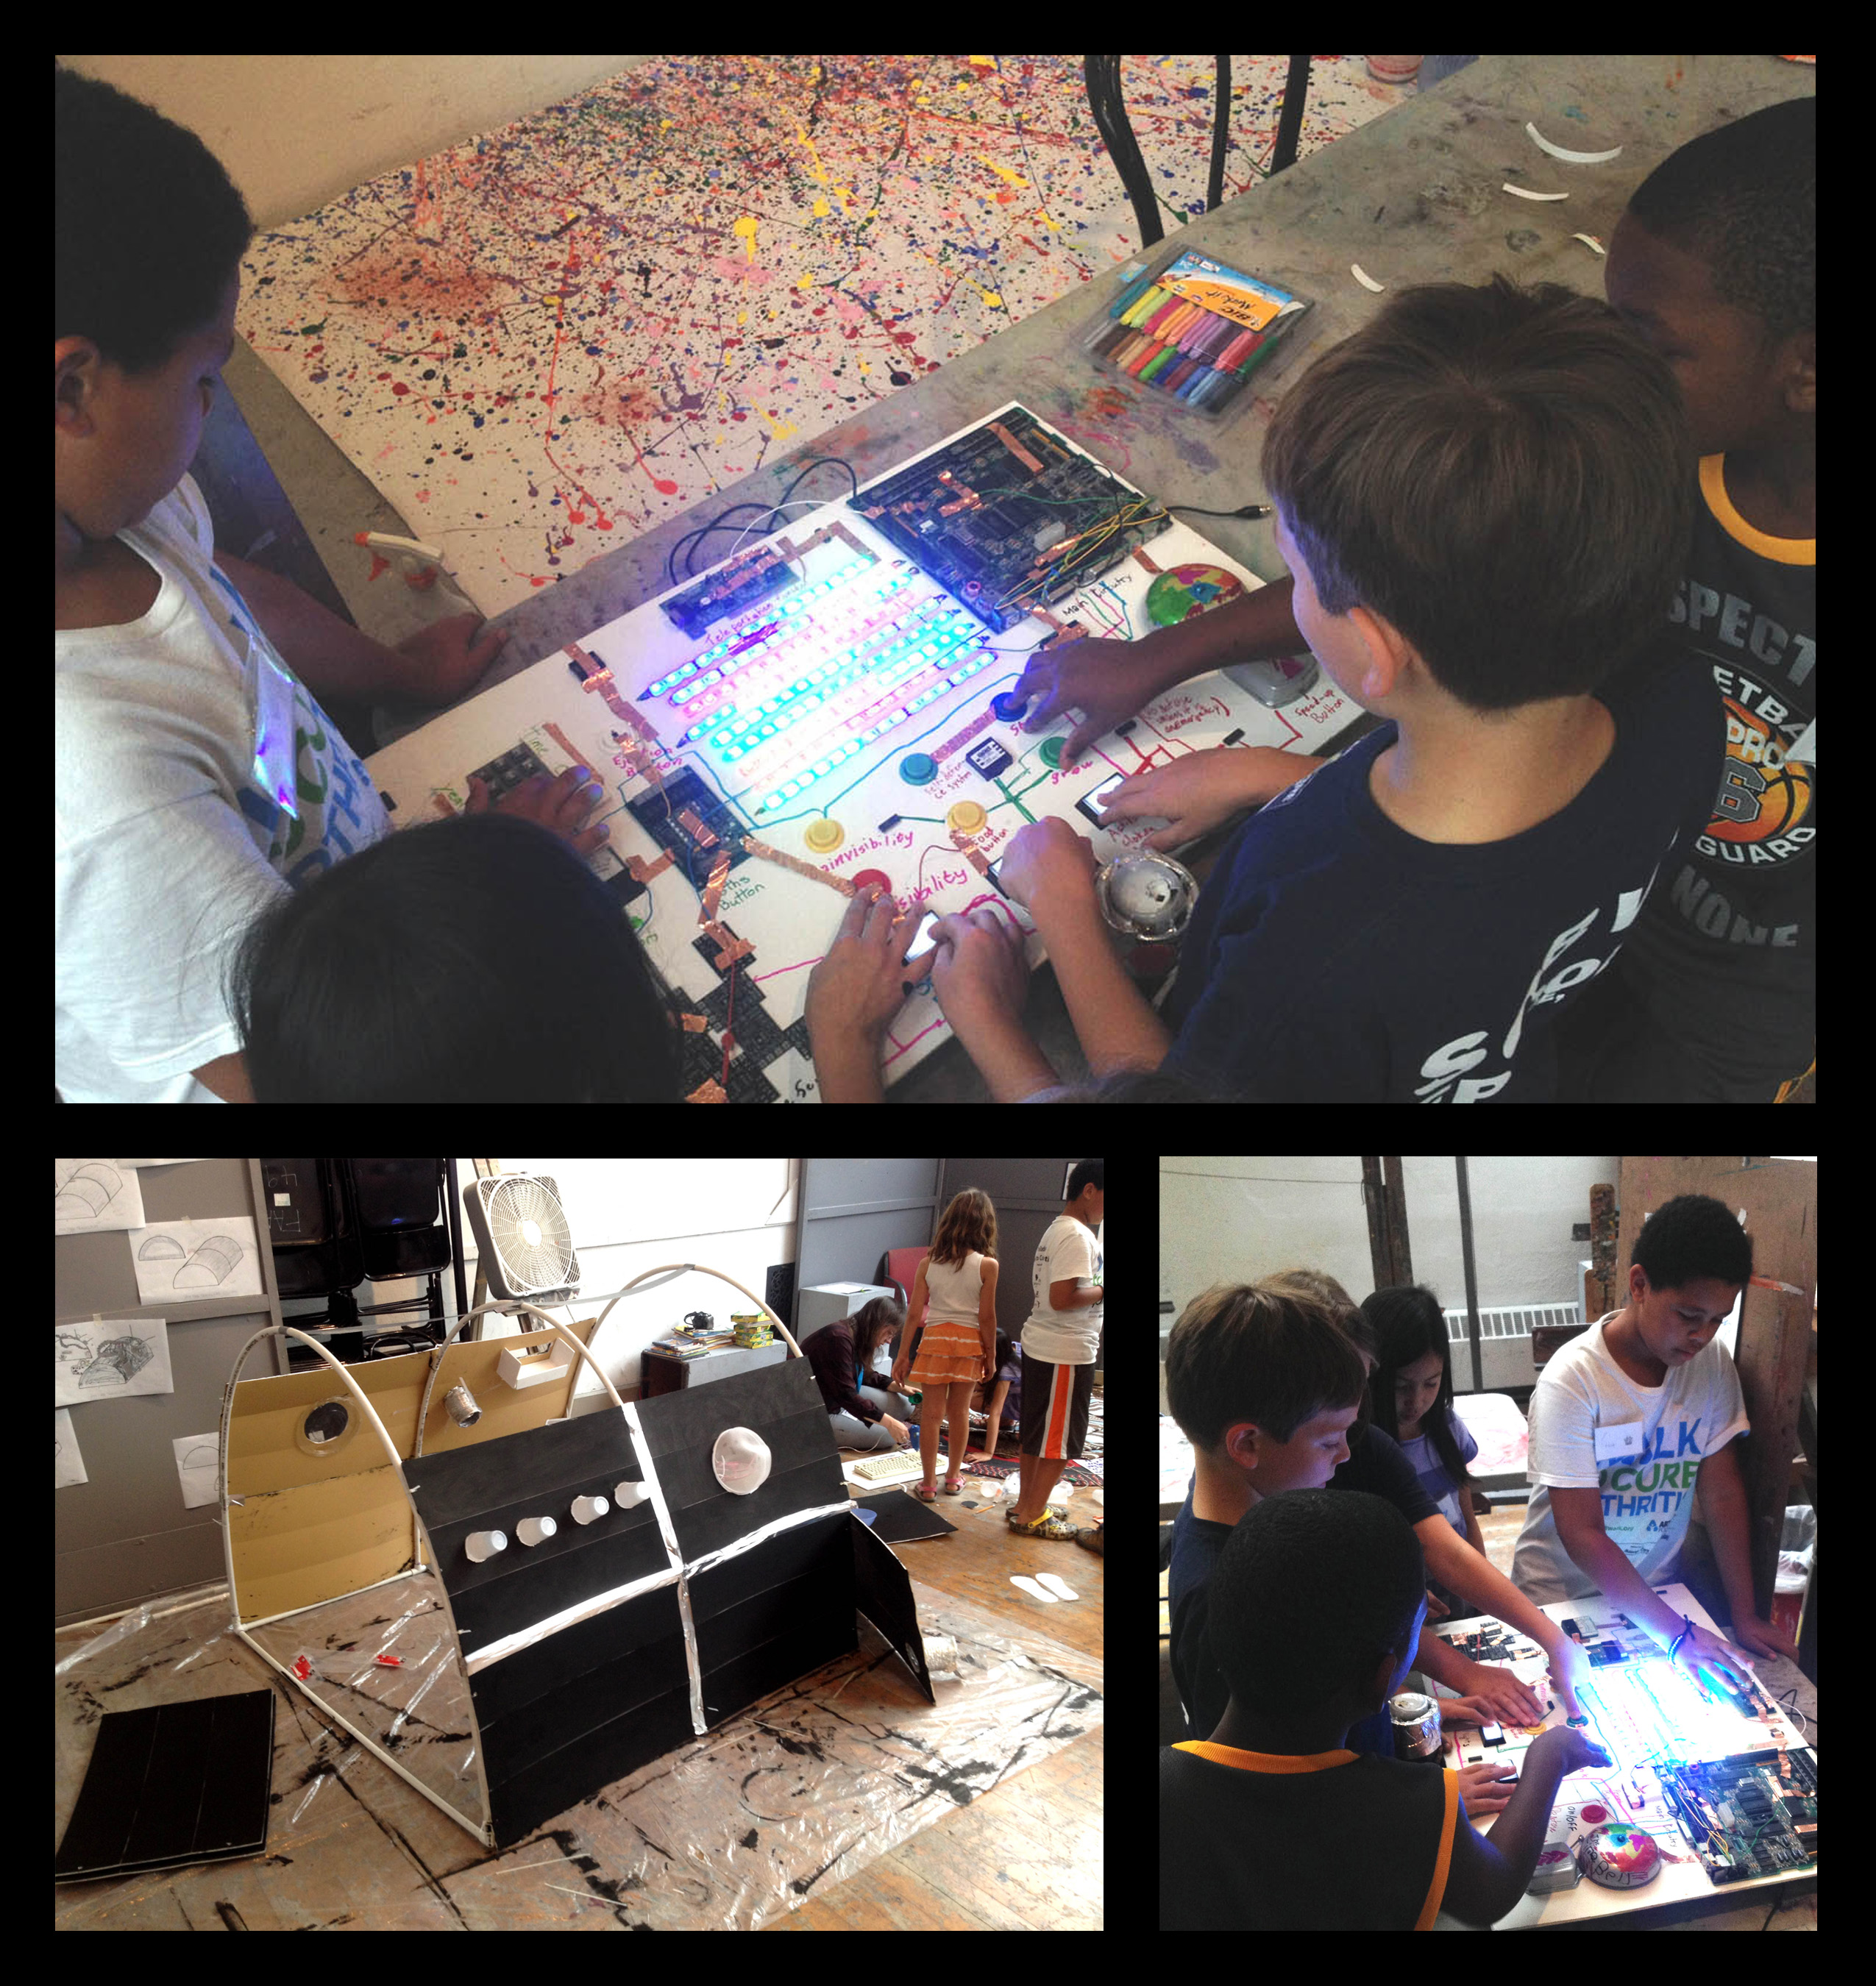 Hive76 teams up with PAFA Art Summer Camp to build Epic Time Machine!